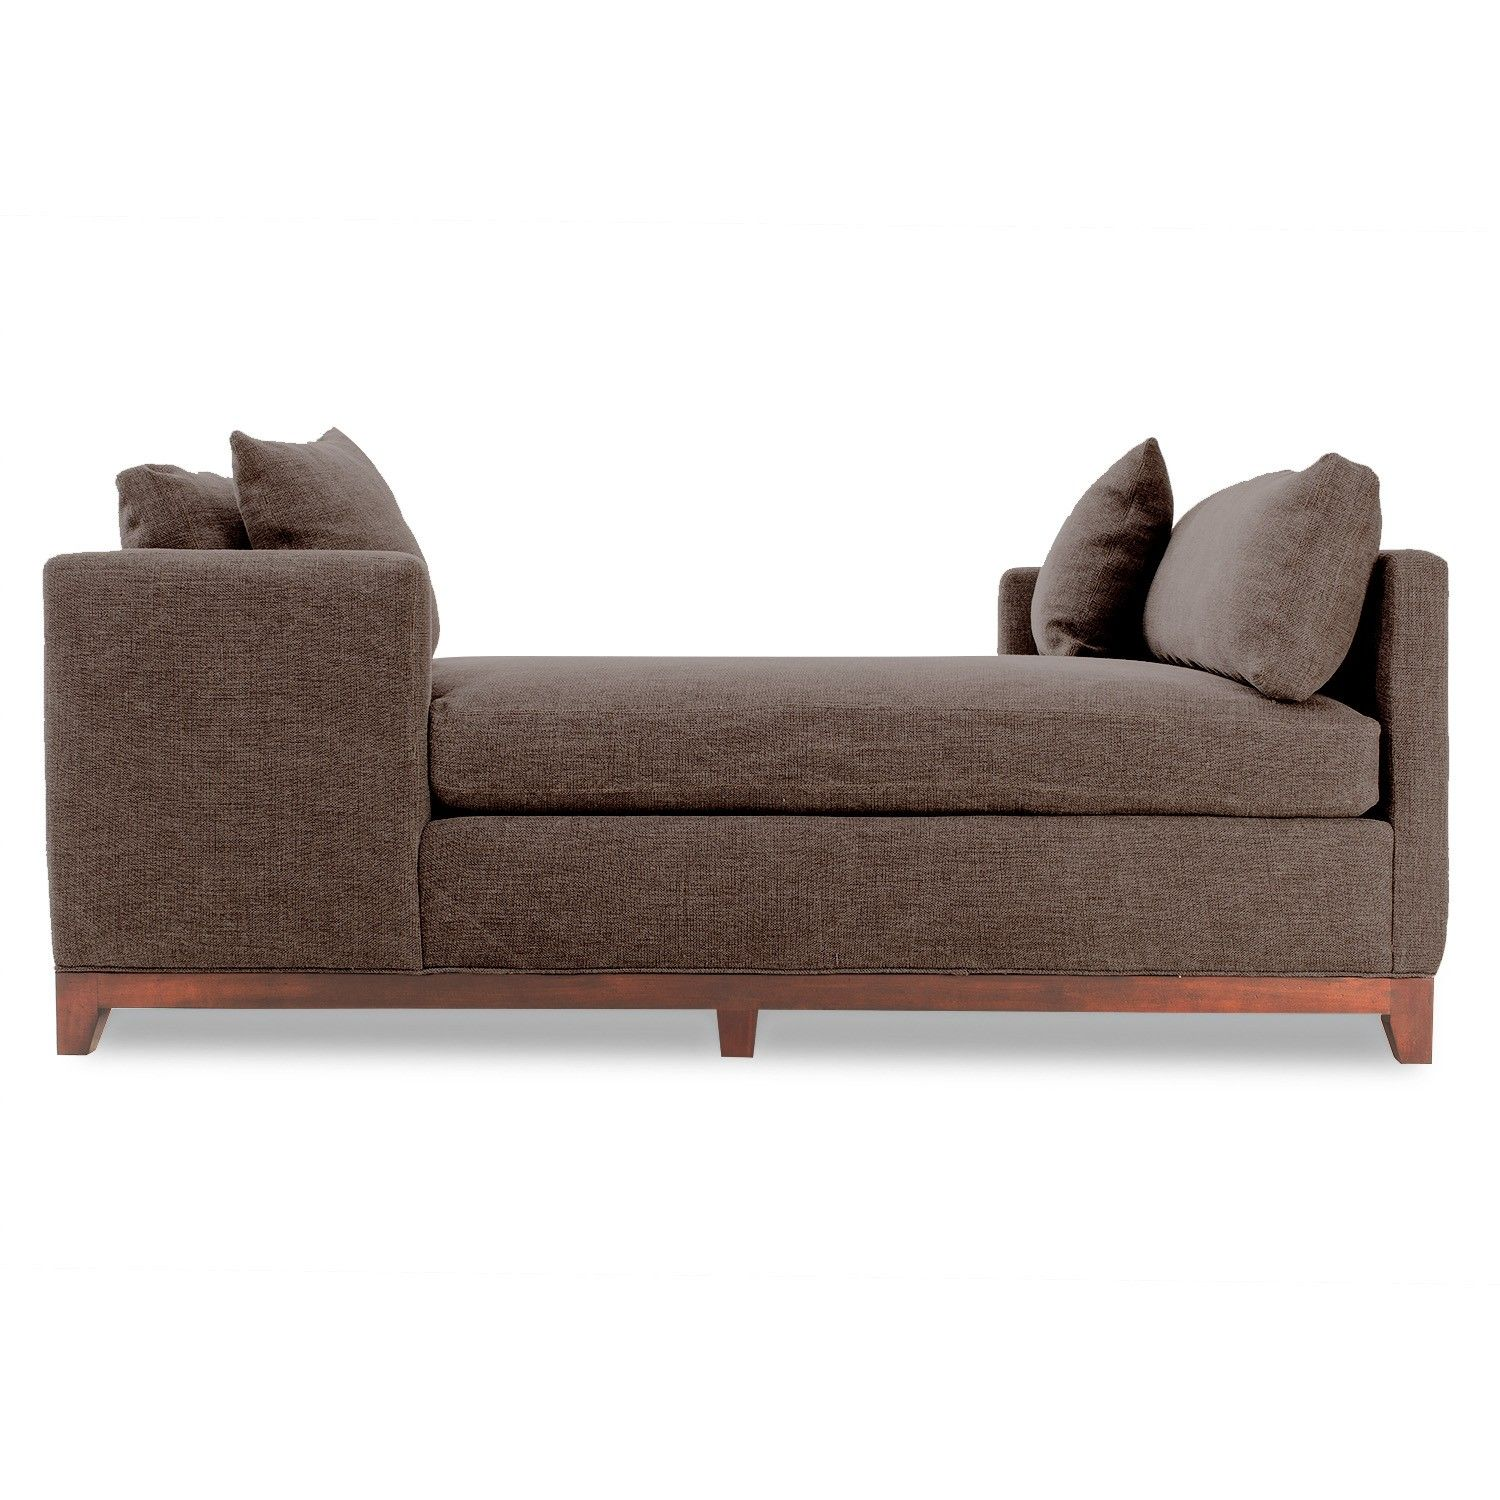 Pleasant Irving Place Inn Double Chaise For The Home Modern Ibusinesslaw Wood Chair Design Ideas Ibusinesslaworg